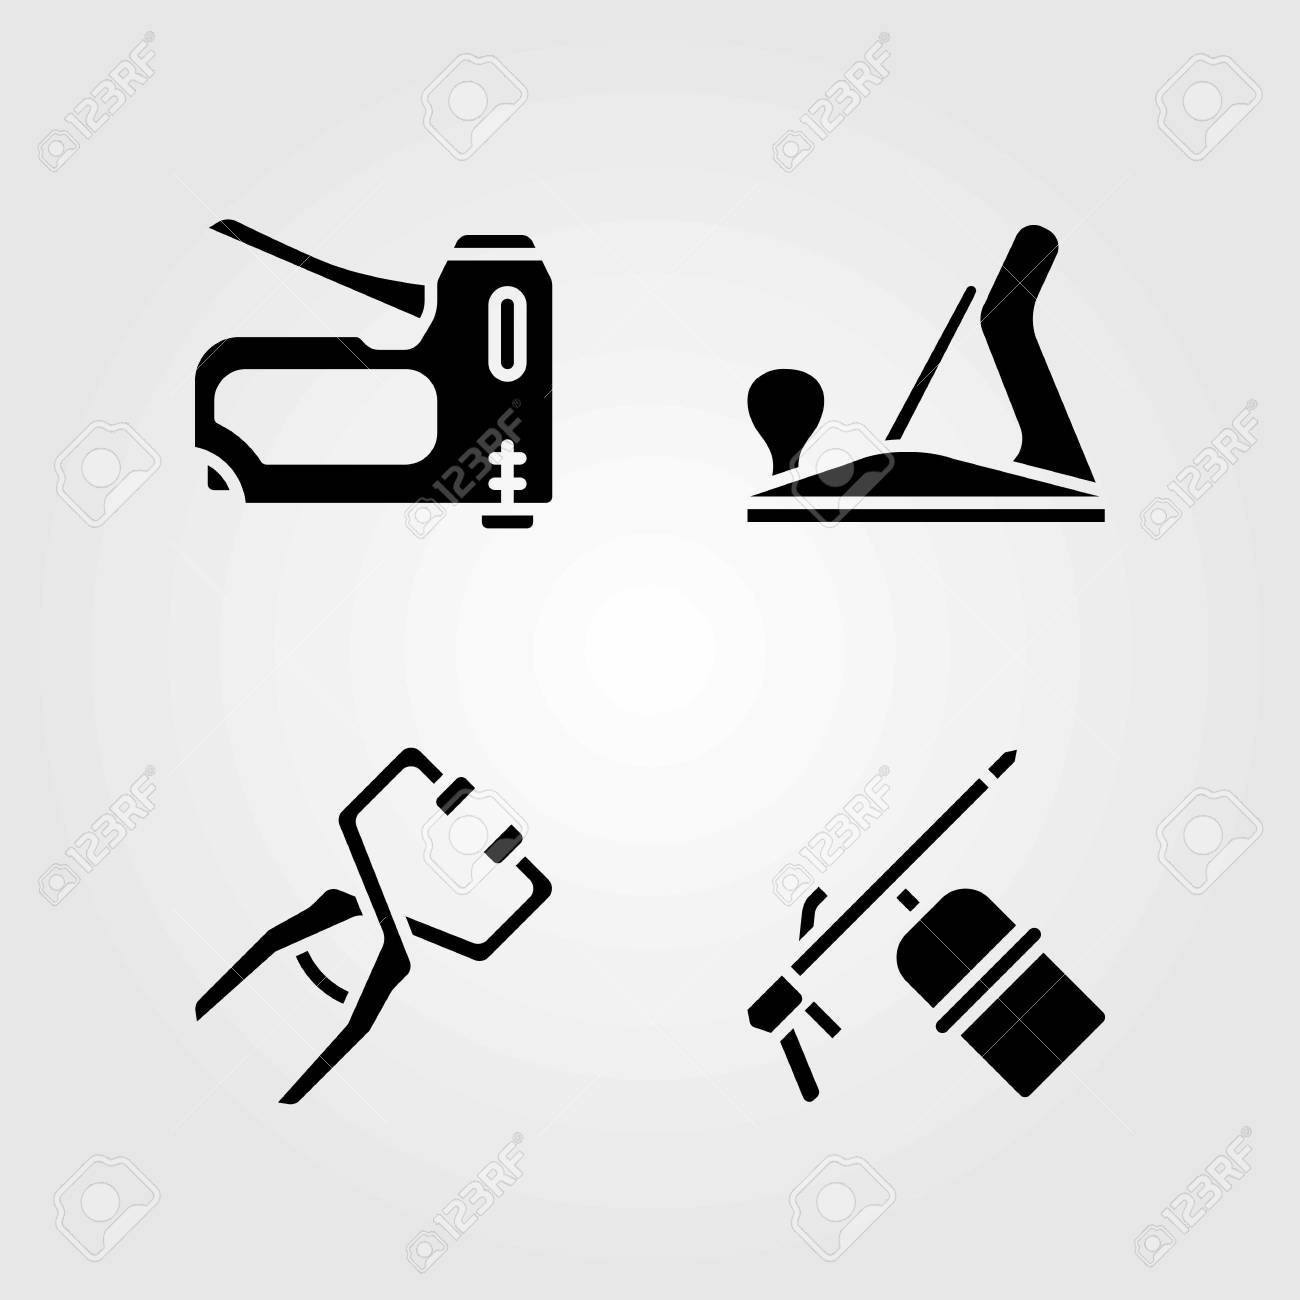 Tools Vector Icons Set Welder Clamp And Wood Plane Royalty Free